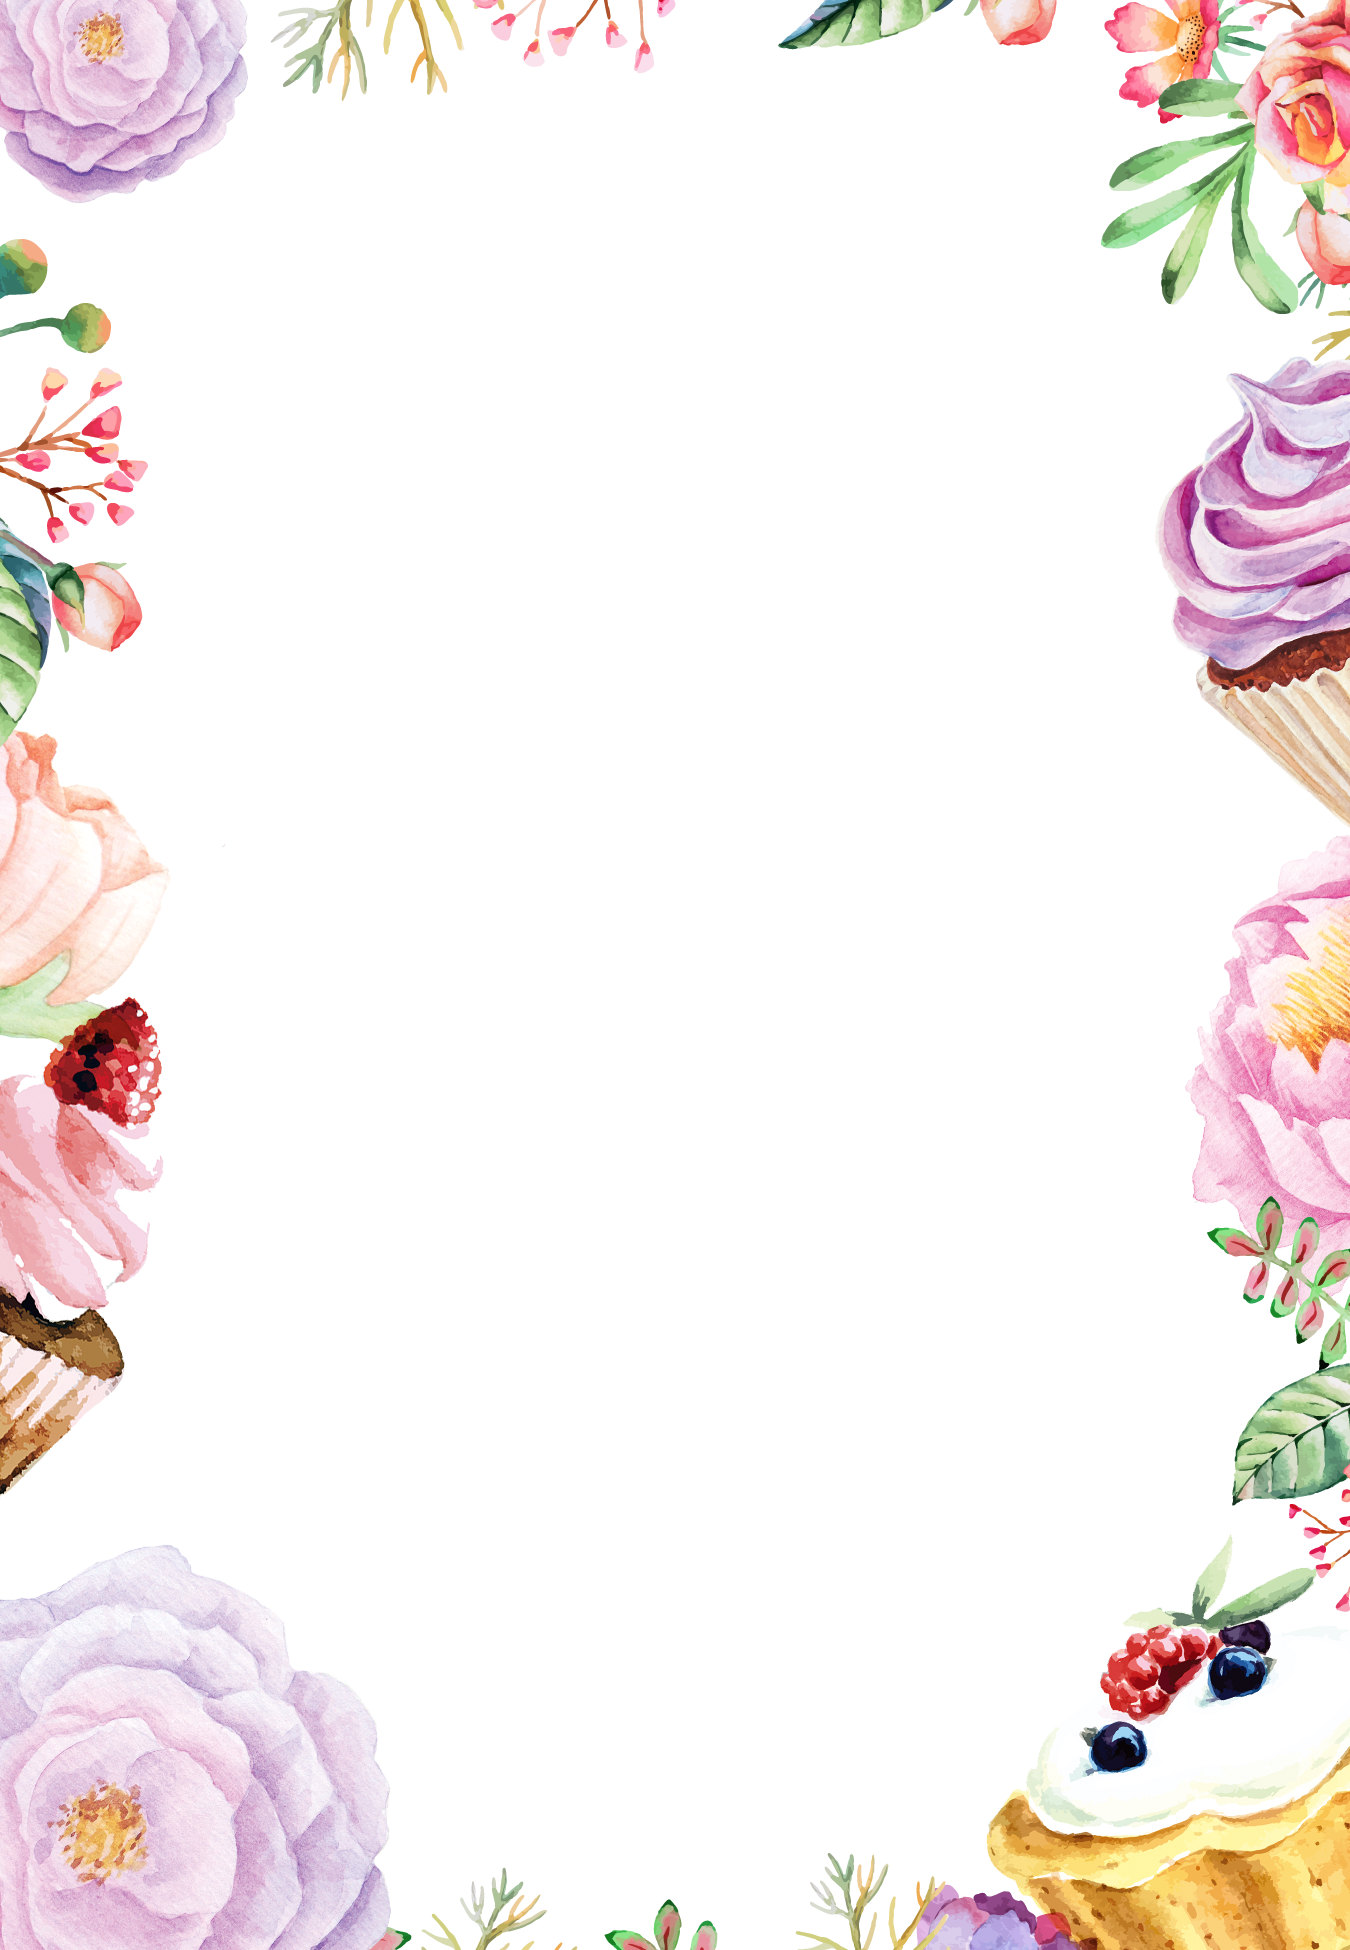 Drawing Cake Flower Transparent Png Clipart Free Download Ywd